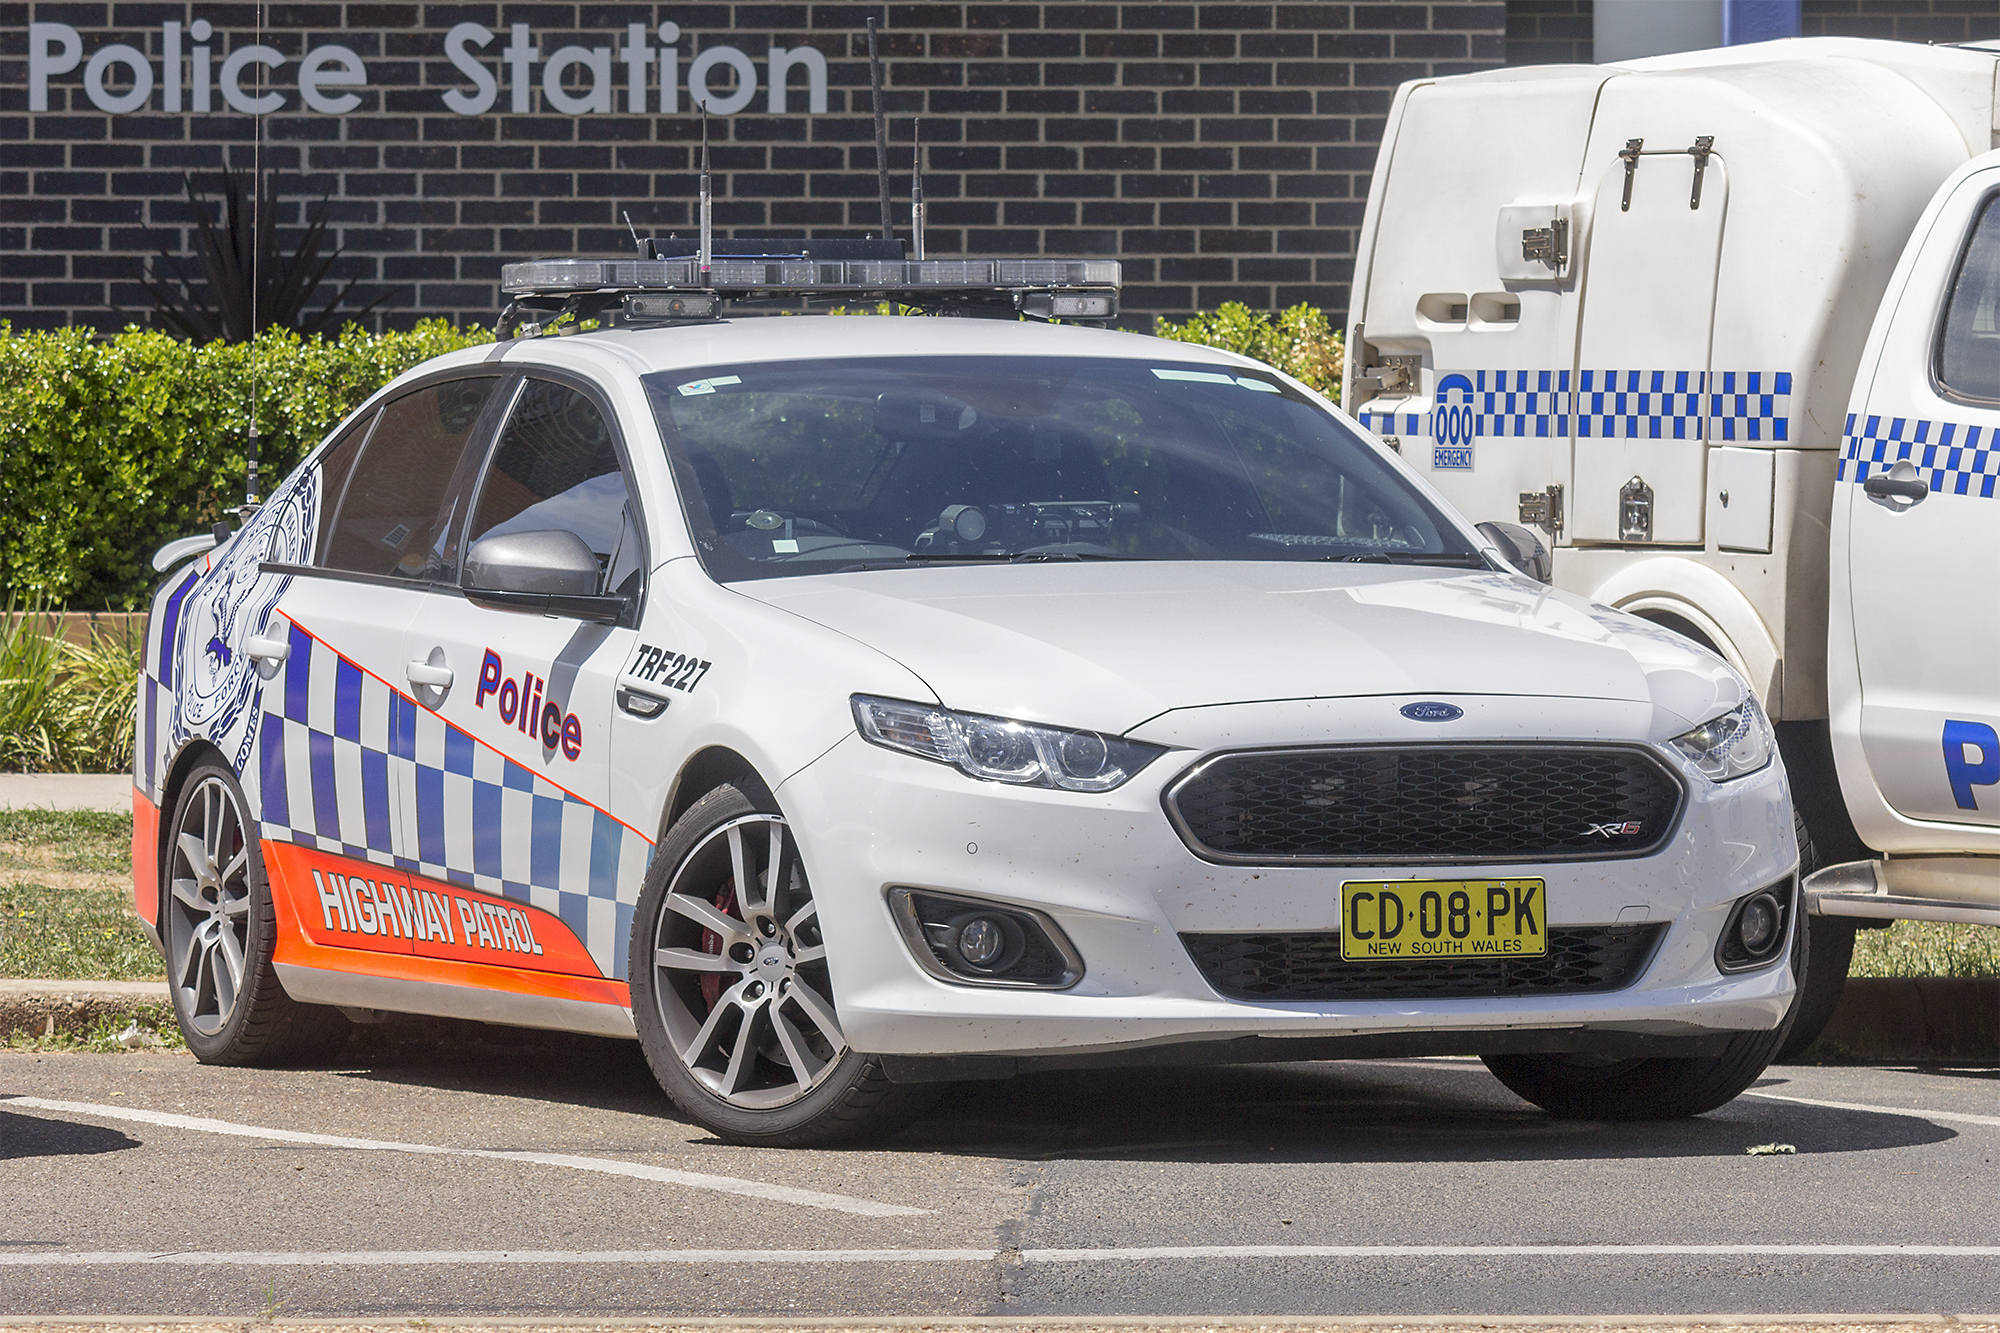 File:Traffic and Highway Patrol Command (TRF 227) Ford Falcon FG X XR6